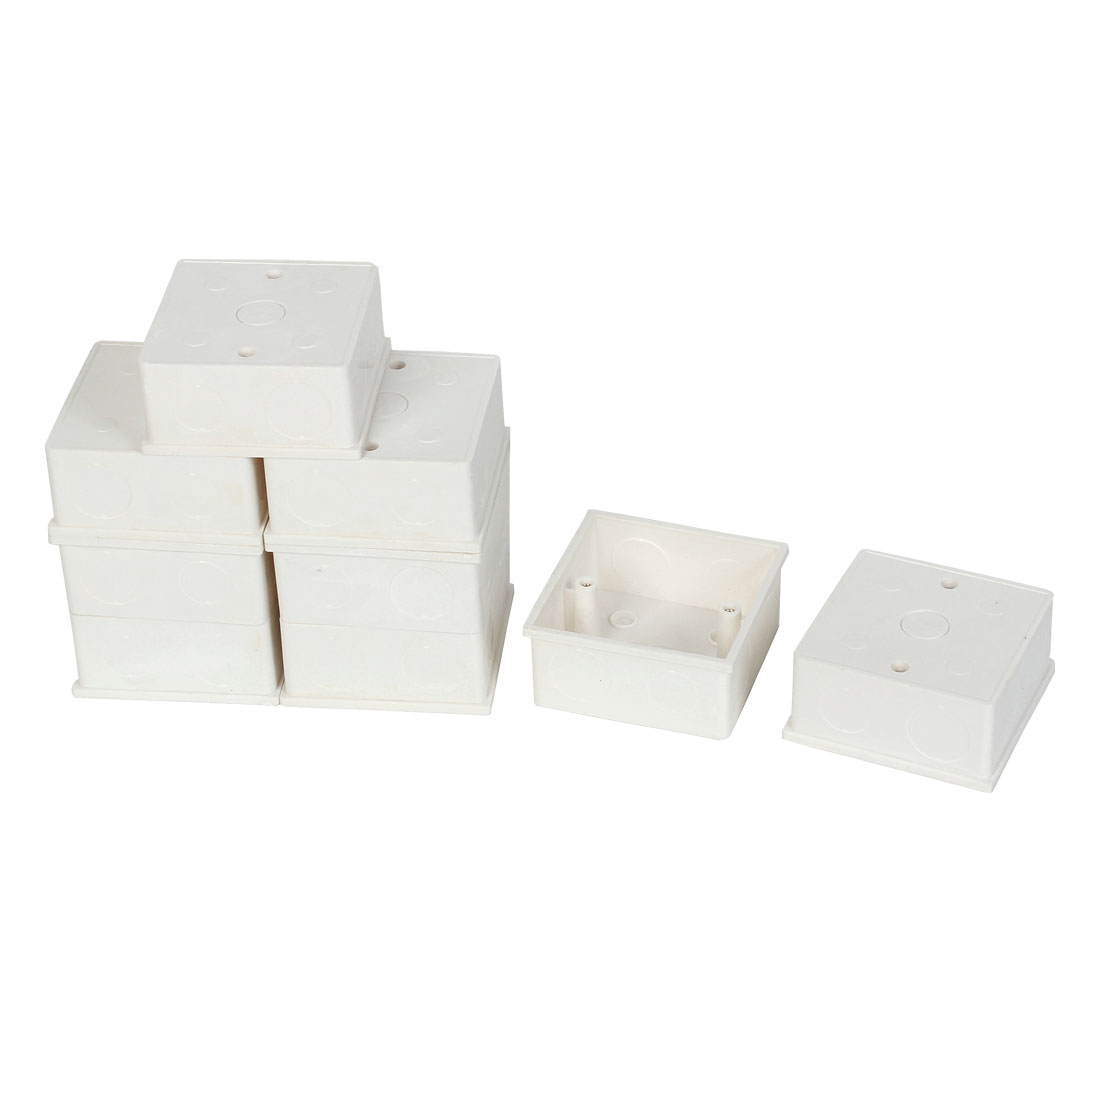 9 Pcs 86mmx86mmx40mm White PVC Square Mount Back Box for Wall Socket